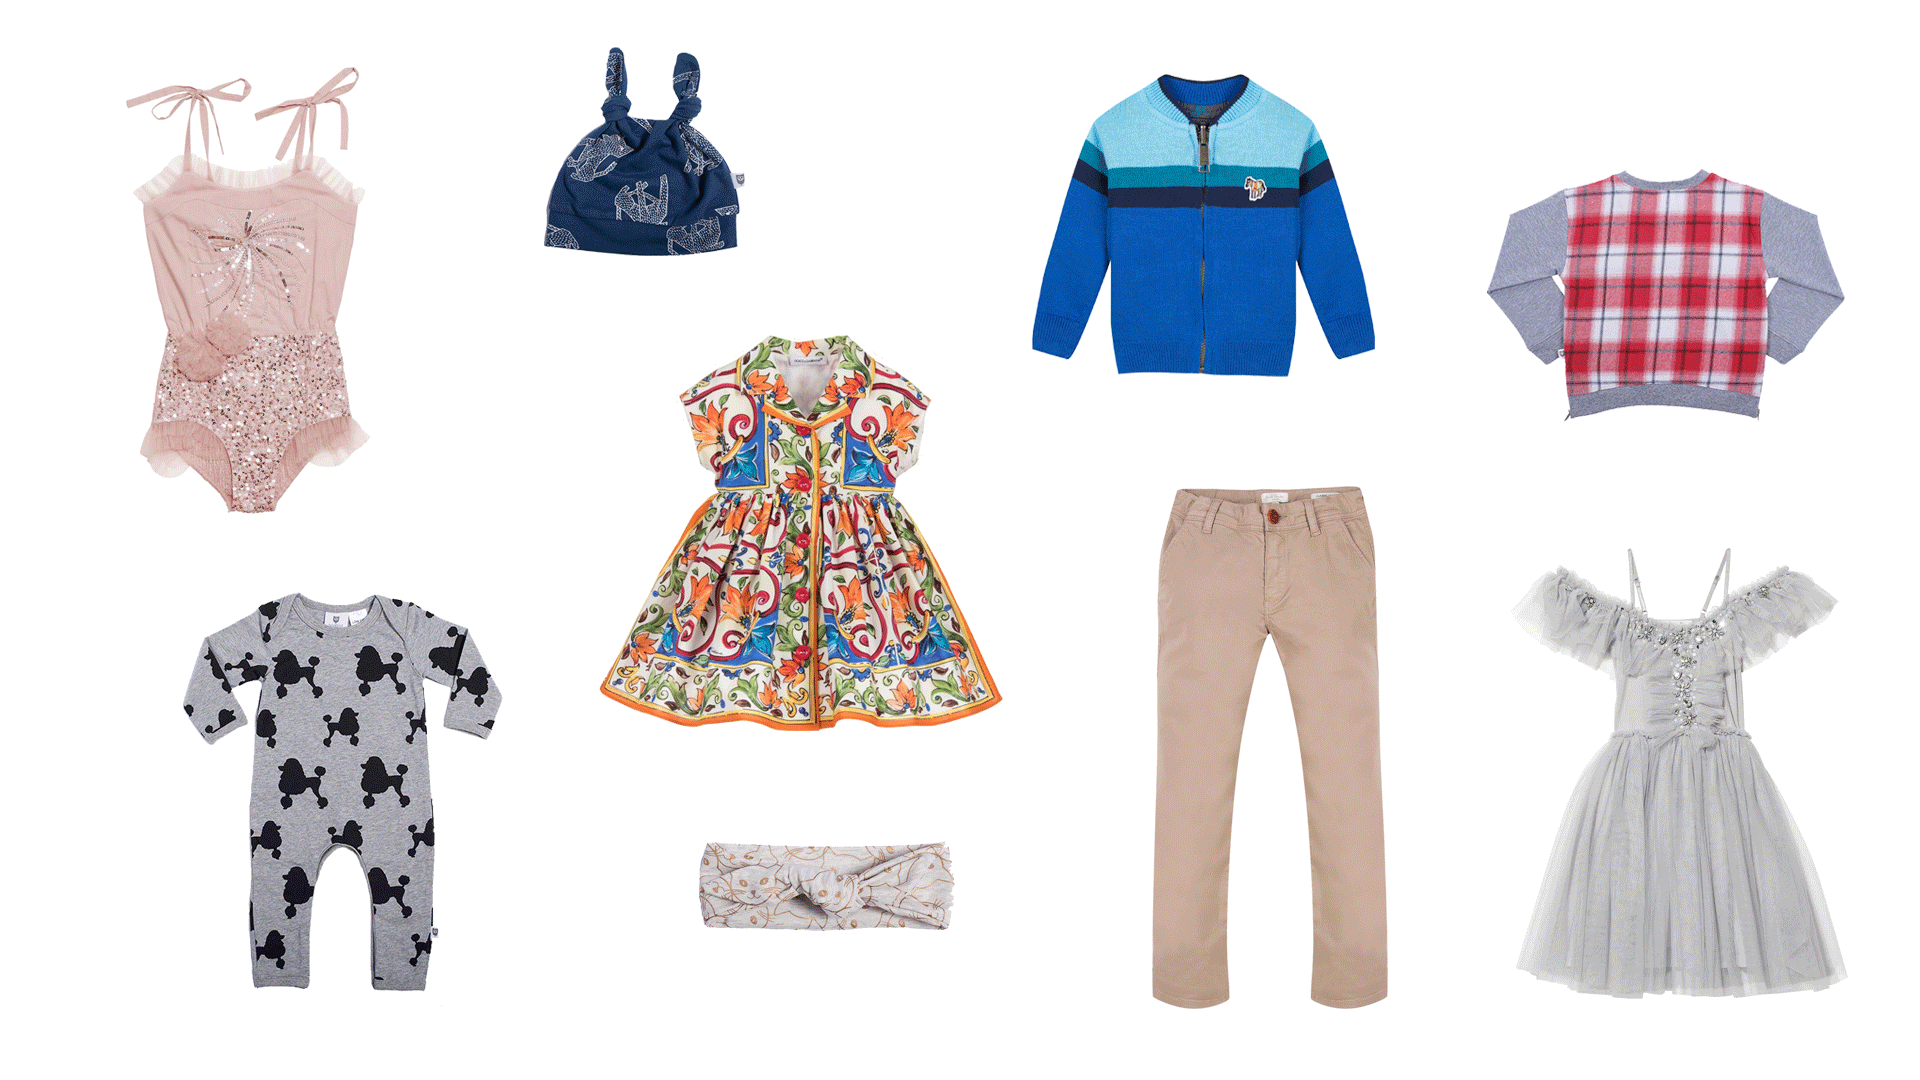 Buy Kids' Clothes at Melbourne Square Mall in Melbourne, FL! Find a great selection of boys', girls', infant and children's clothing & accessories in store!Location: West New Haven Avenue, Melbourne, , FL.